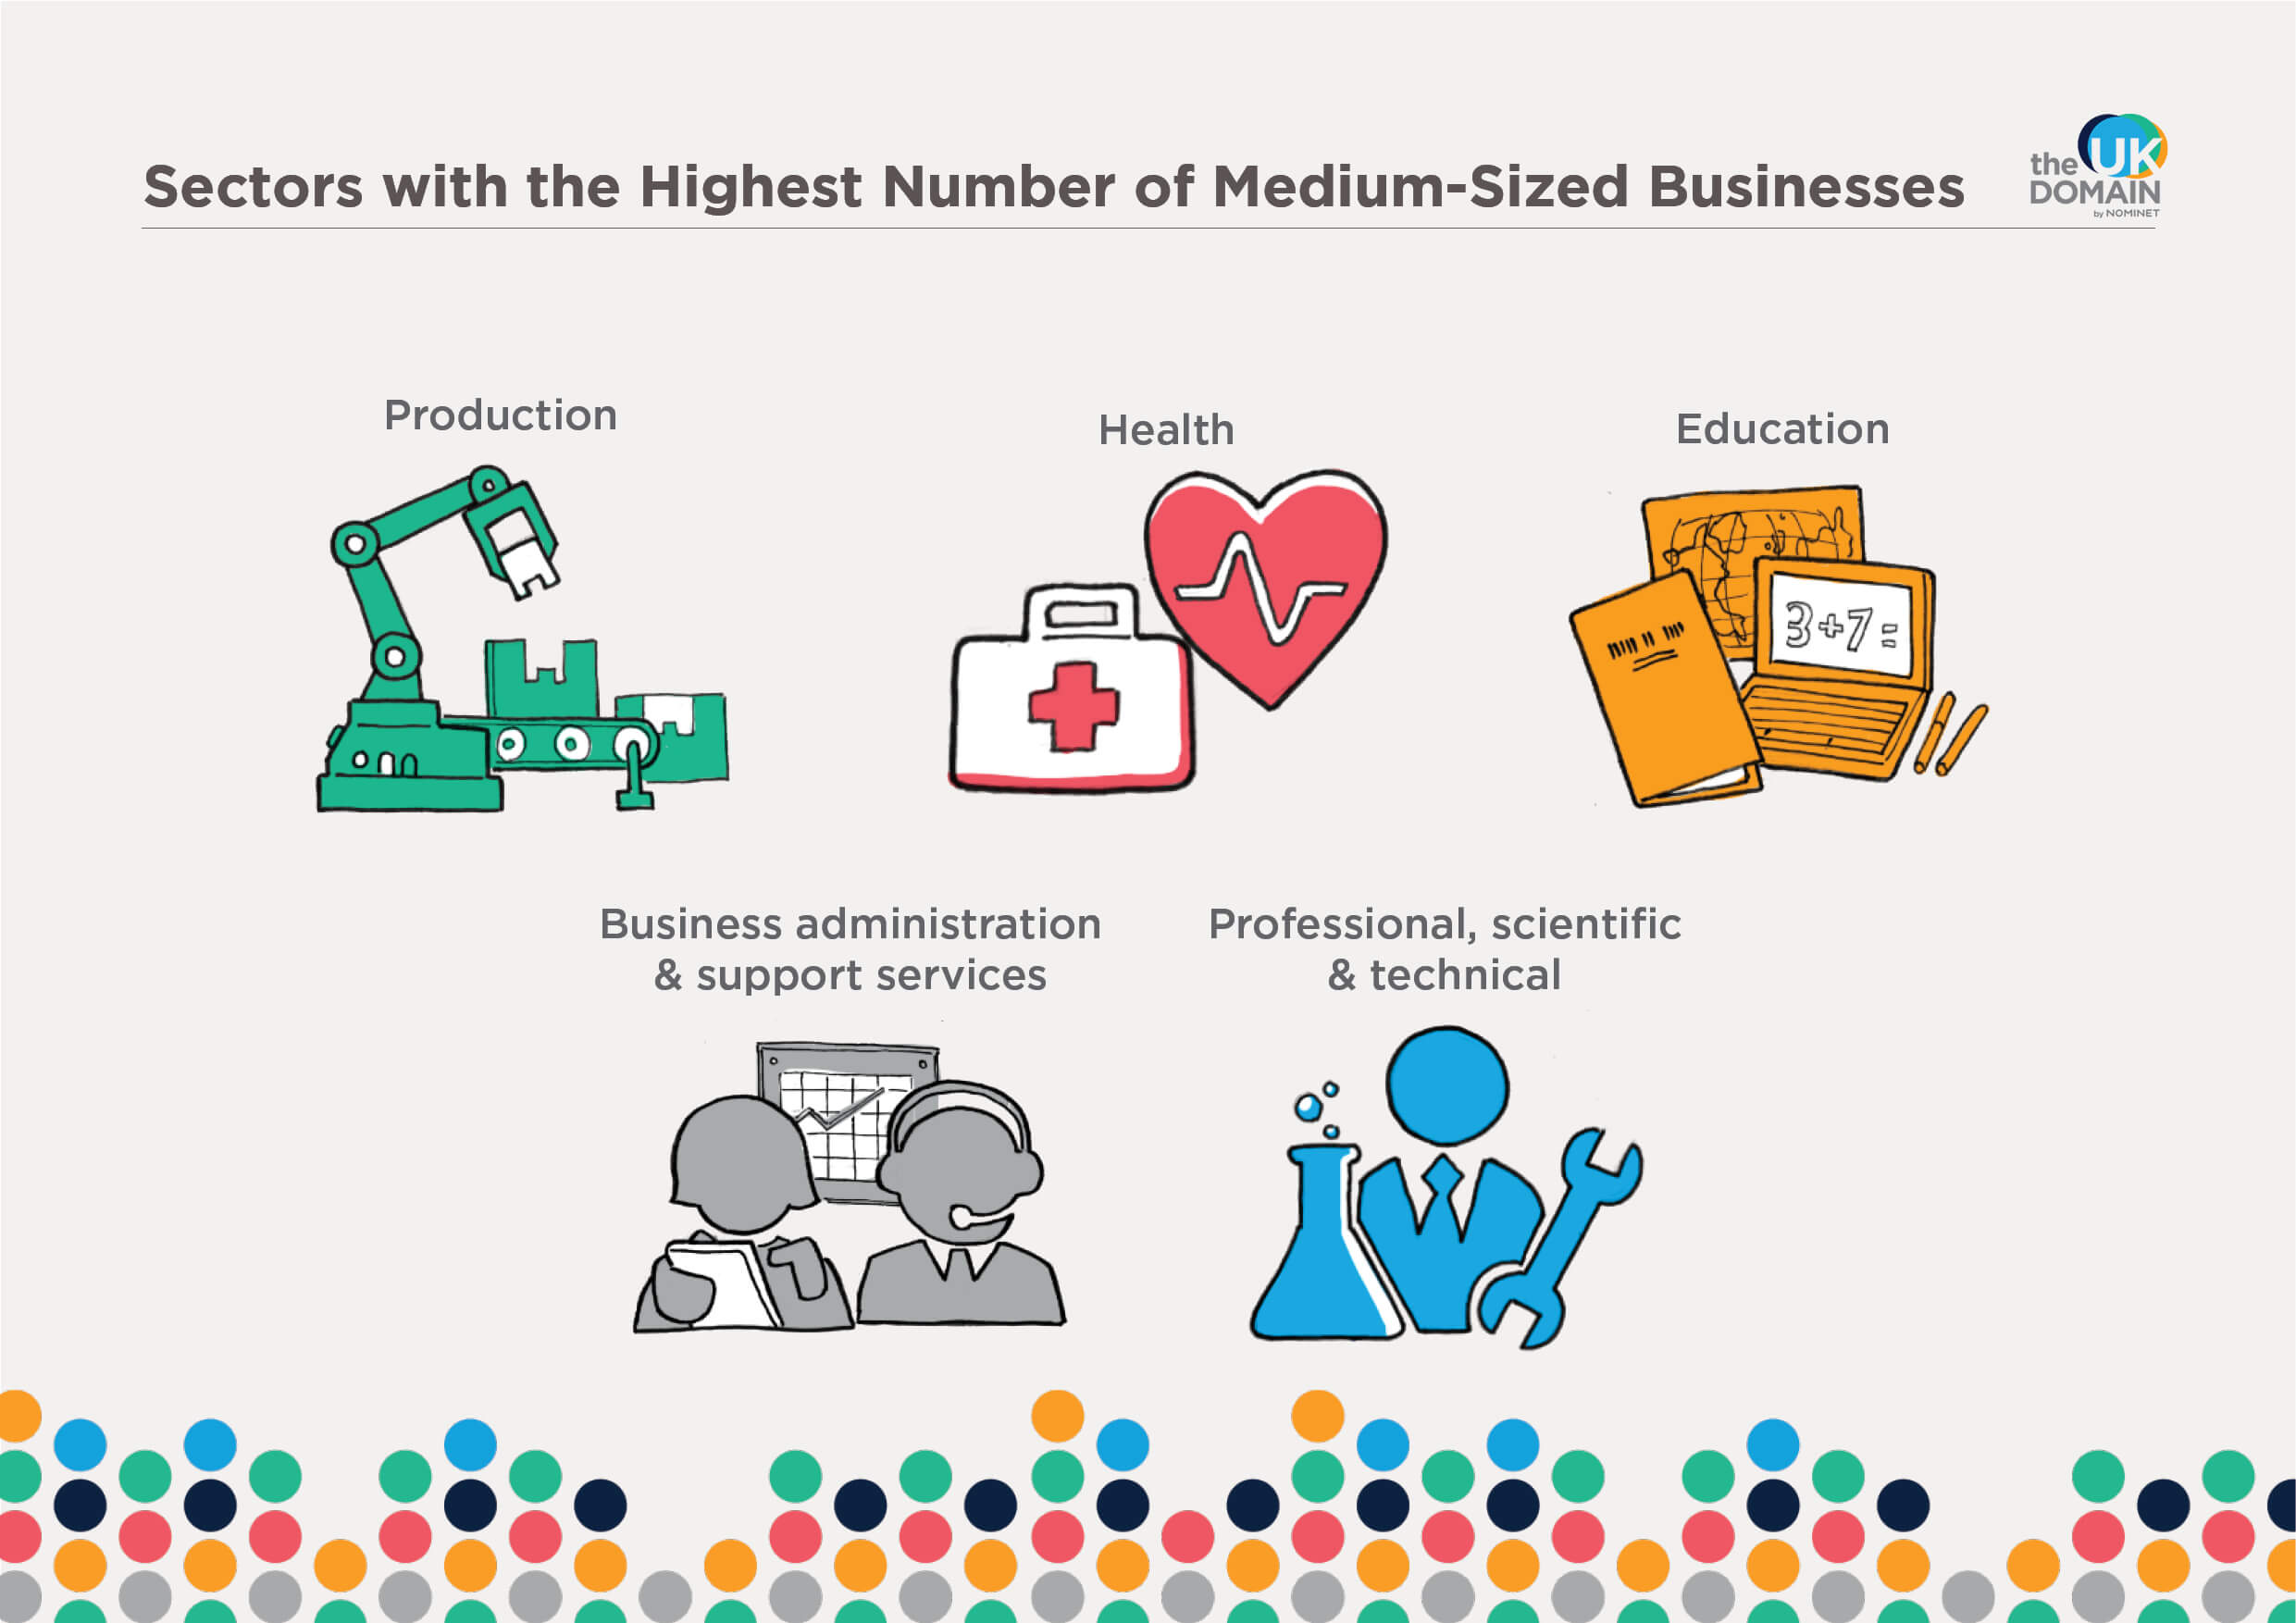 Sectors with the highest number of medium-sized businesses